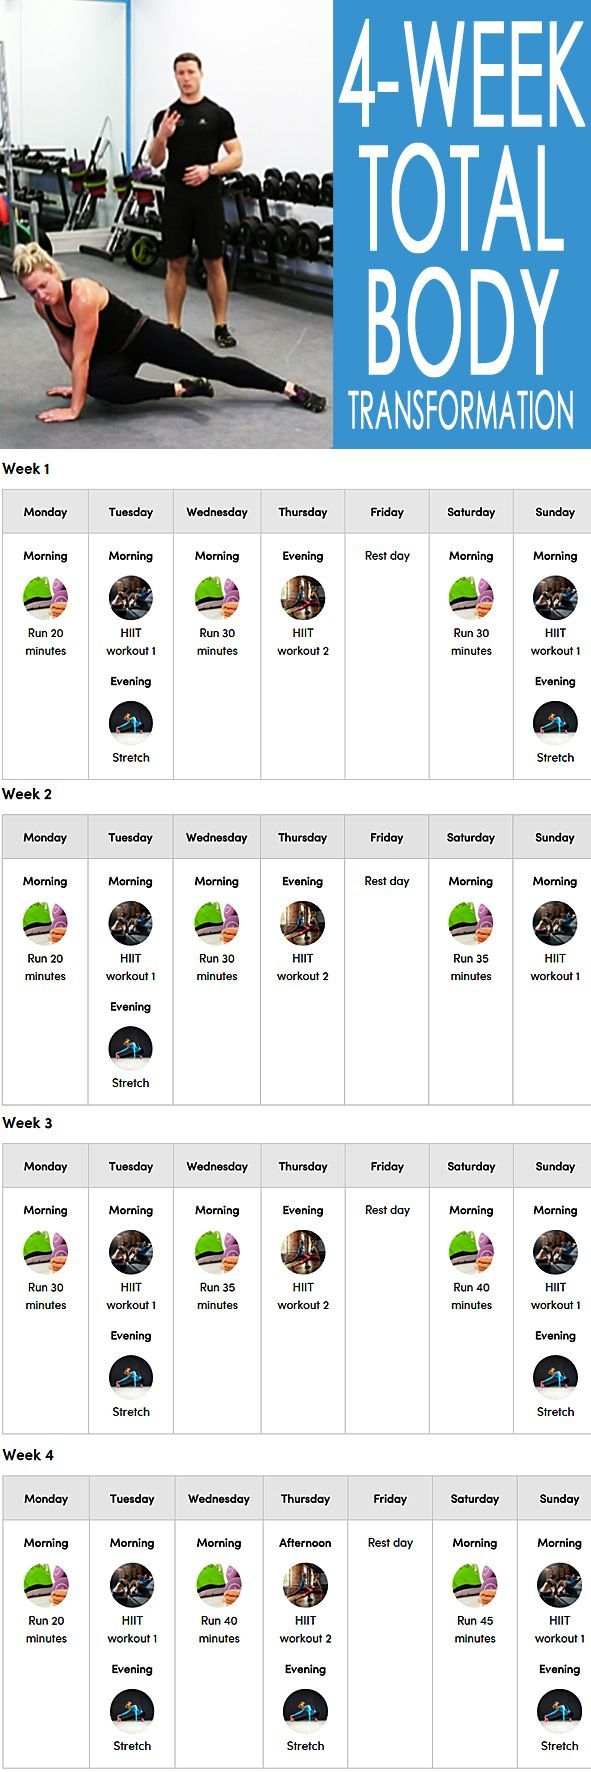 4-week no-equipment training and diet program designed to change your eating and exercise habits as well as the way you look and feel. Once you see the results, it will be easier to continue for the long term too. What seems impossible today will one day become your warm up! #fitnesschallenge #workoutplan #workoutforwomen #weightlossplan #fatburn #getfit